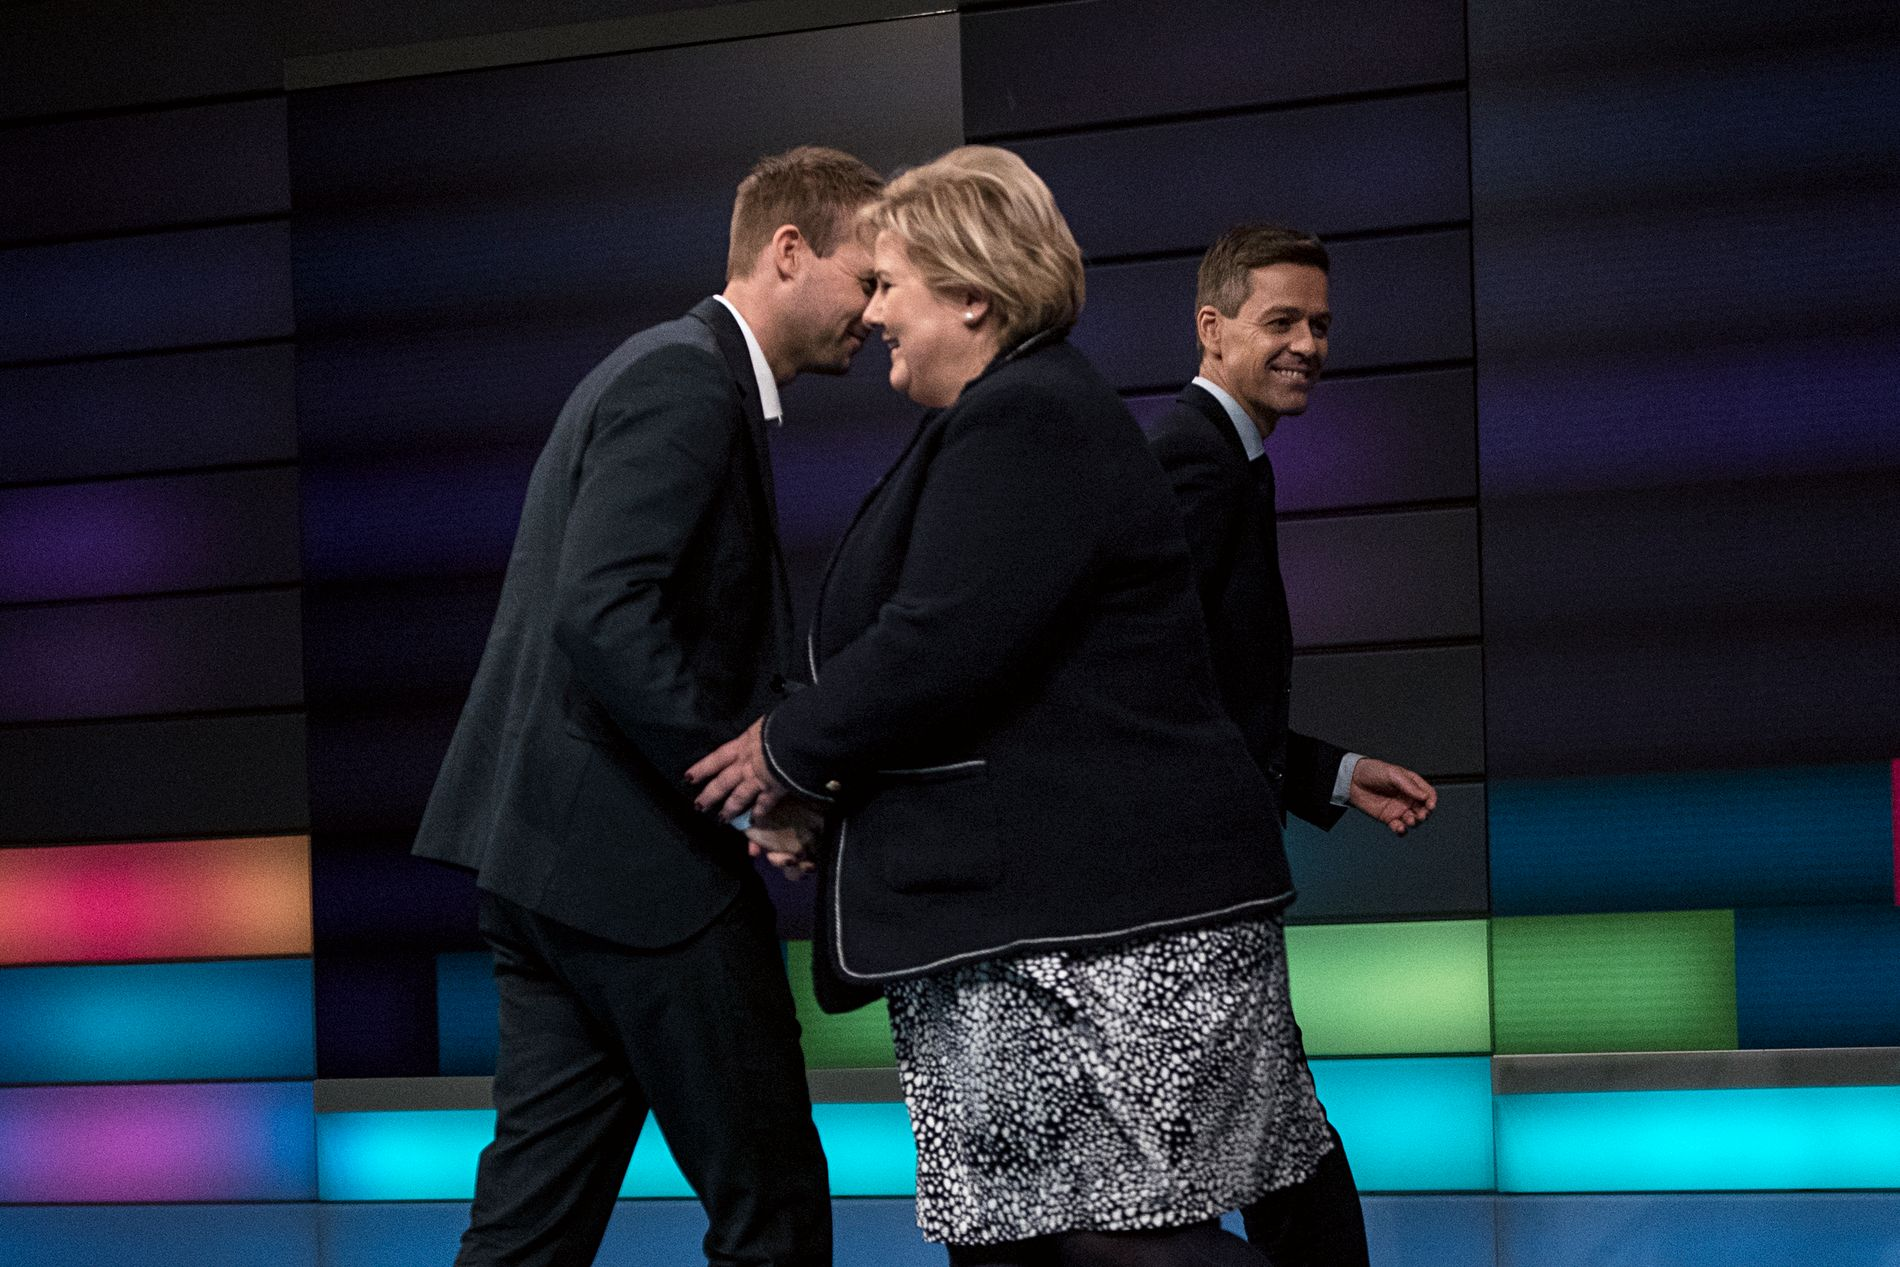 HYSJ, HYSJ: Prime Minister Erna Solberg gives a hug to Deputy Kjell Ingolf Ropstad, who welcomes the studio for the program